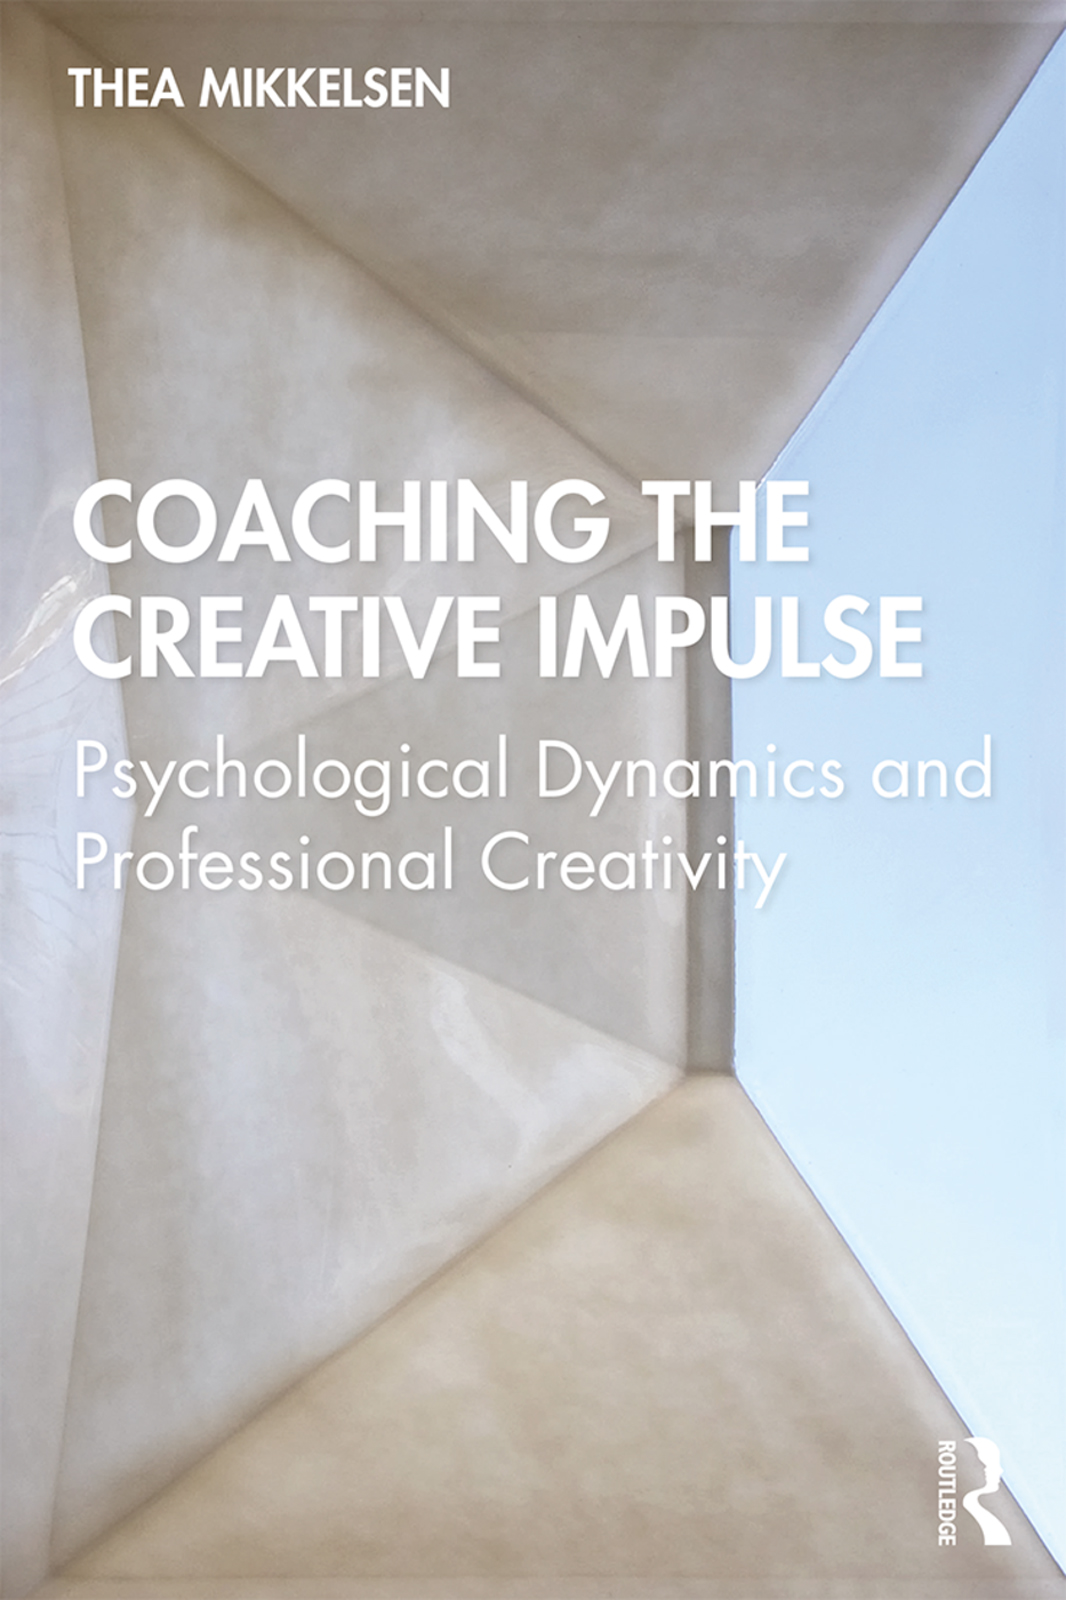 Coaching the Creative Impulse: Psychological Dynamics and Professional Creativity book cover